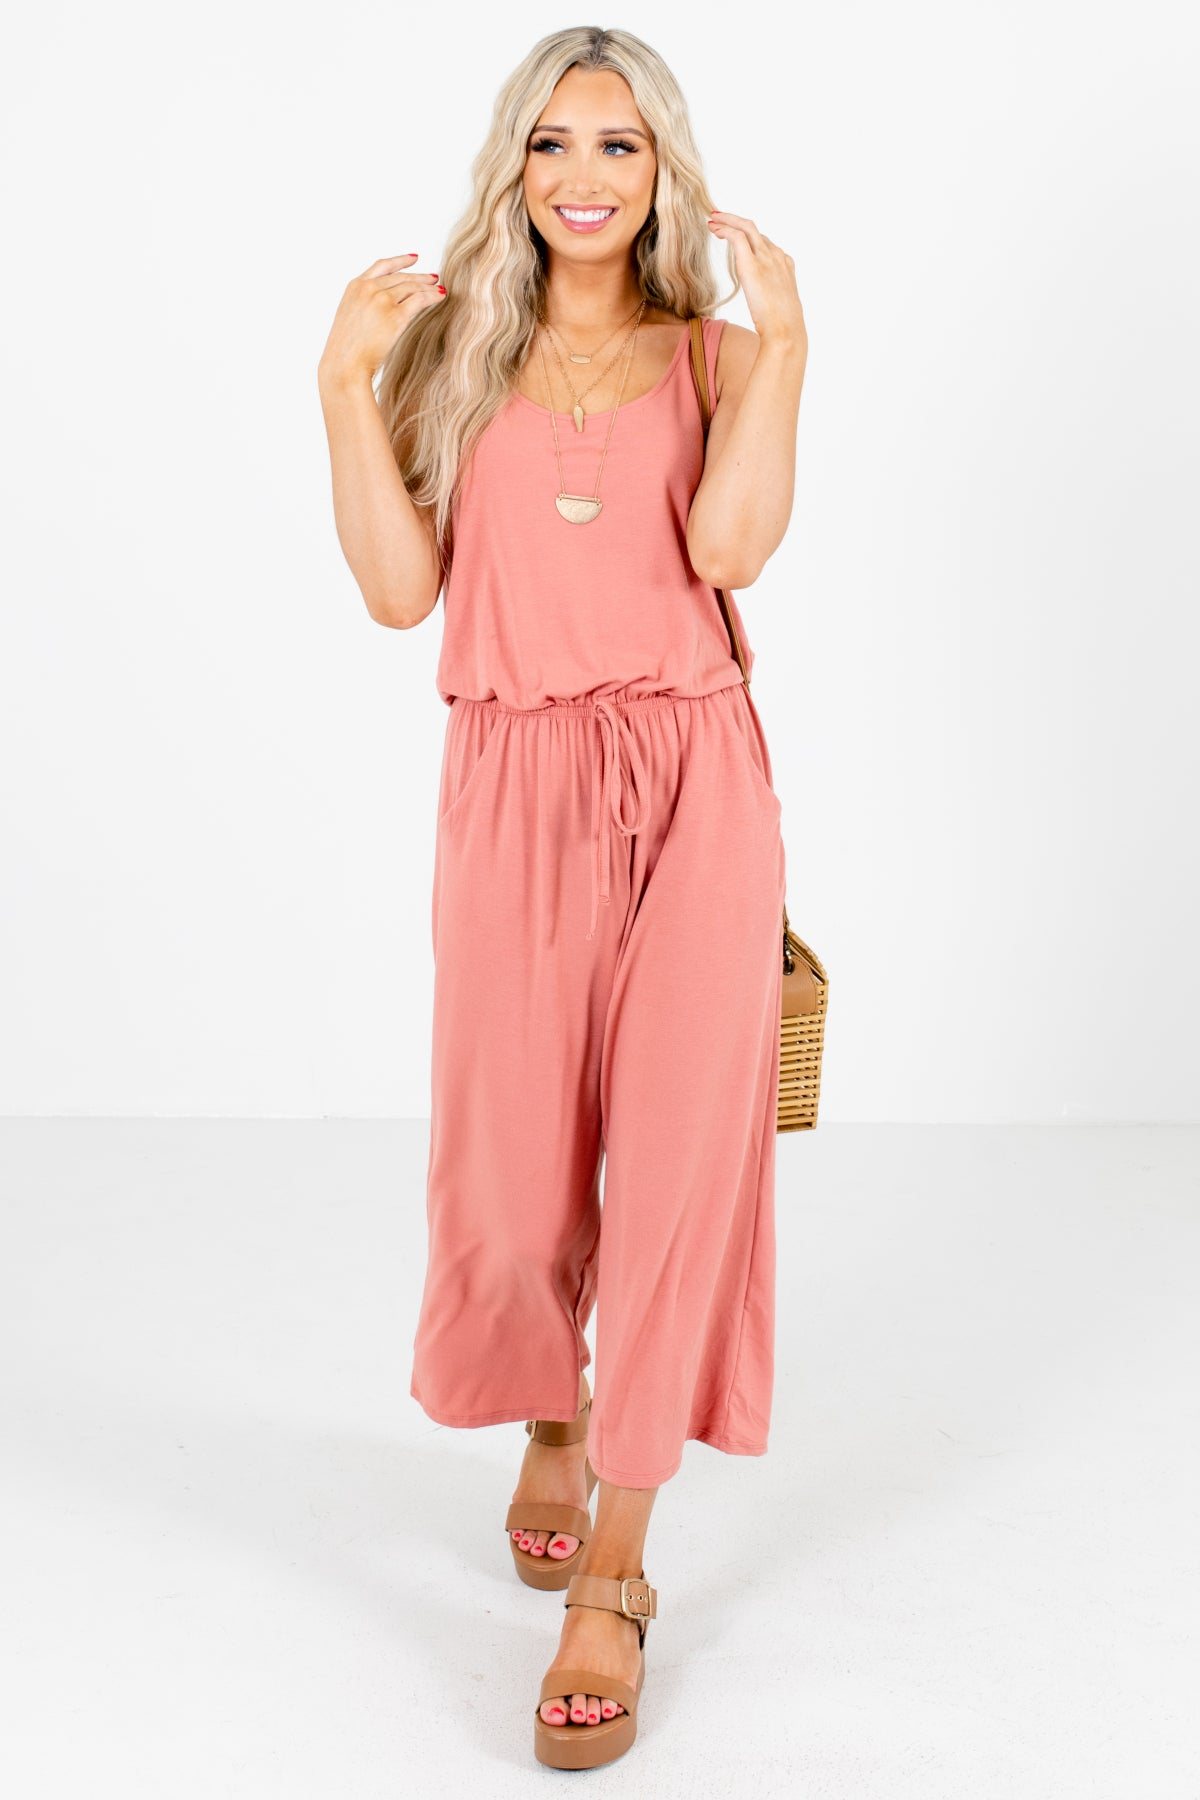 Pink Tank Style Boutique Jumpsuits for Women